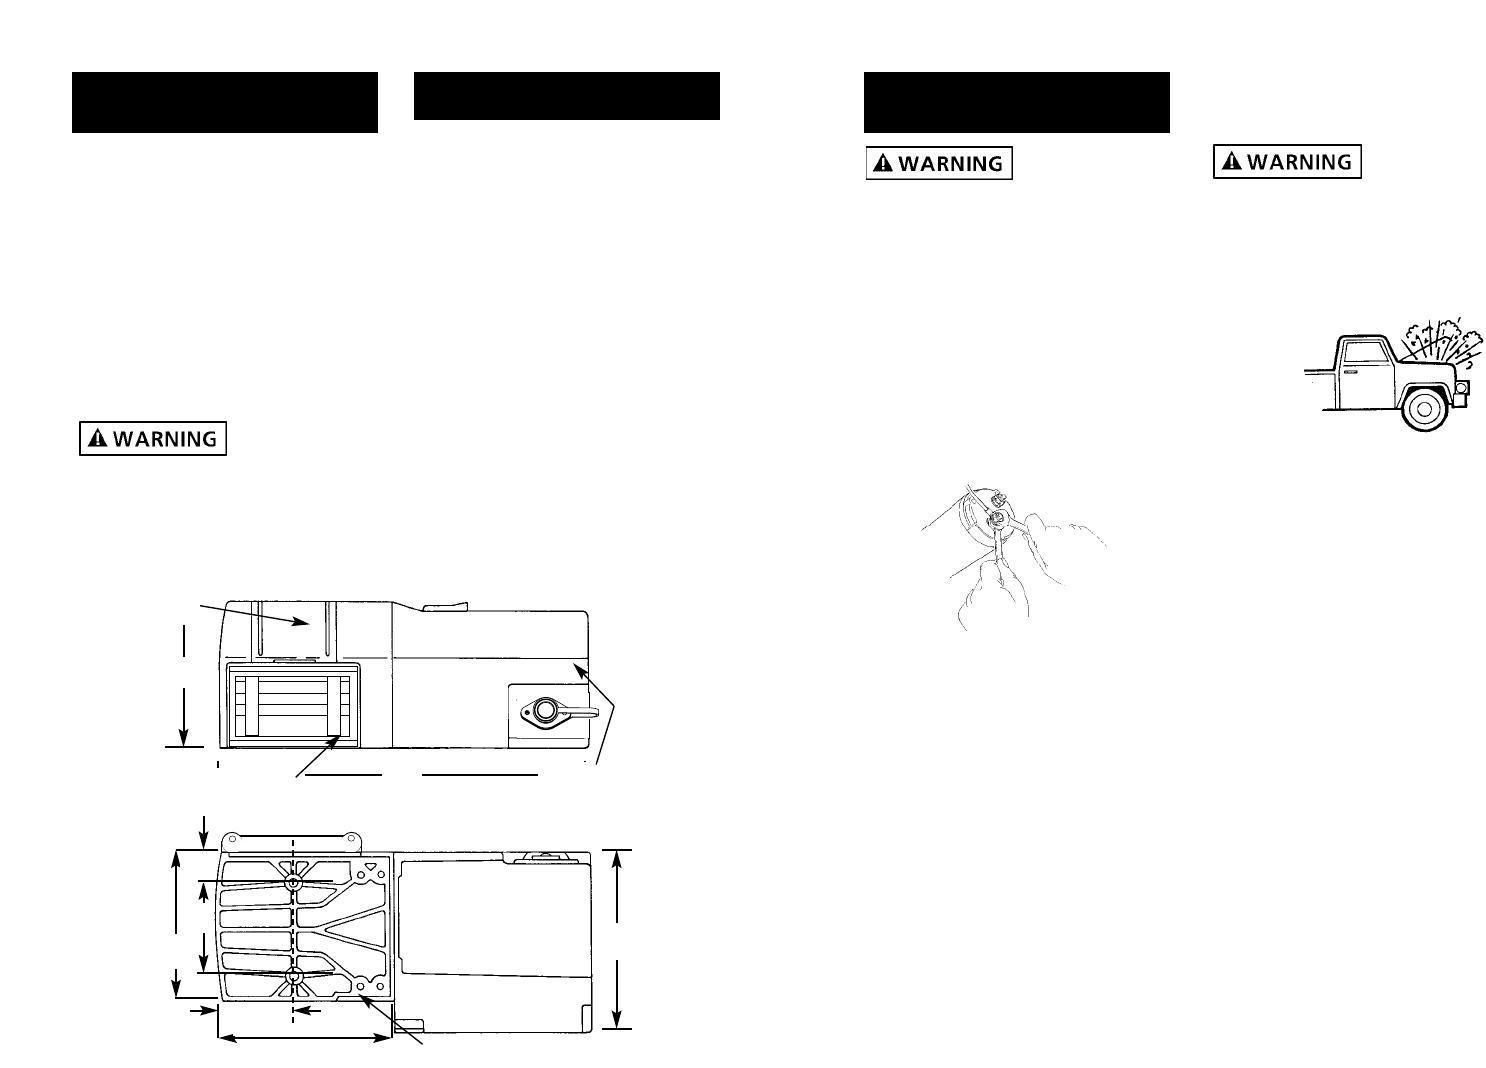 hight resolution of superwinch s3000 s4000 s5000 owners manual page 6